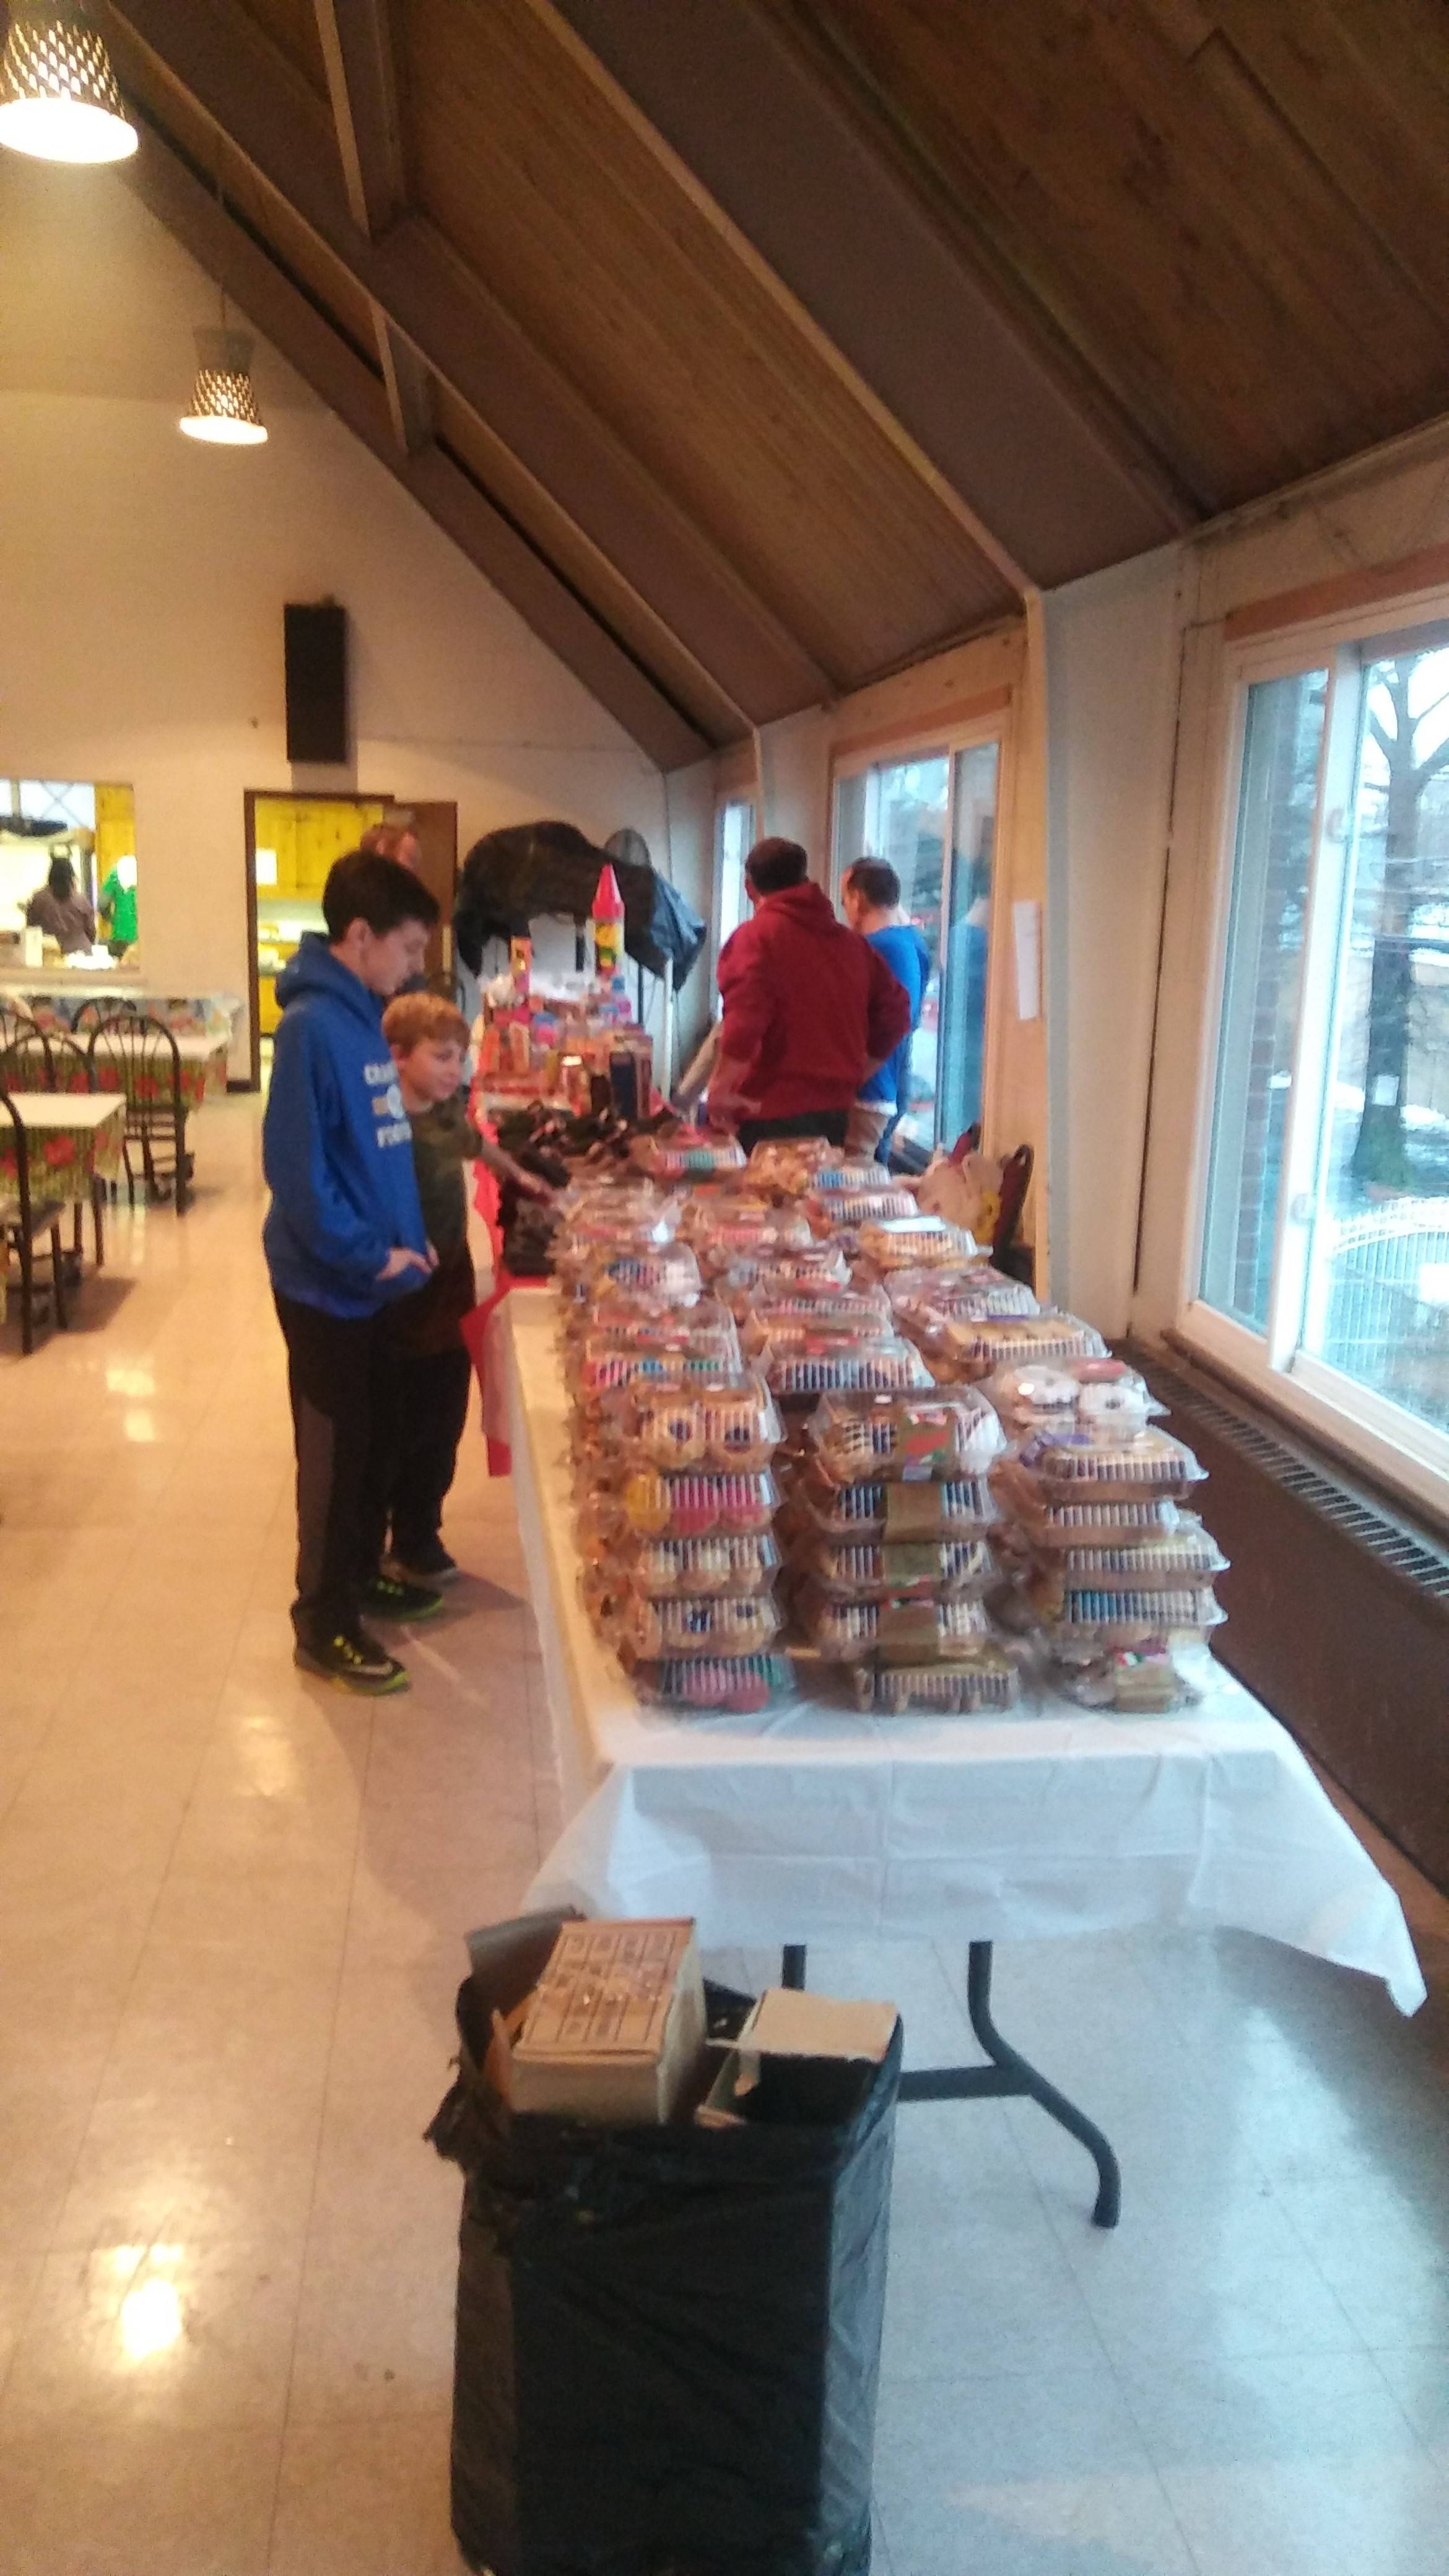 b07f33096486e874f0cc_Volunteers_admiring_the_cookies_donated_by_SuperFresh__formally_The_Food_Emporium.jpg